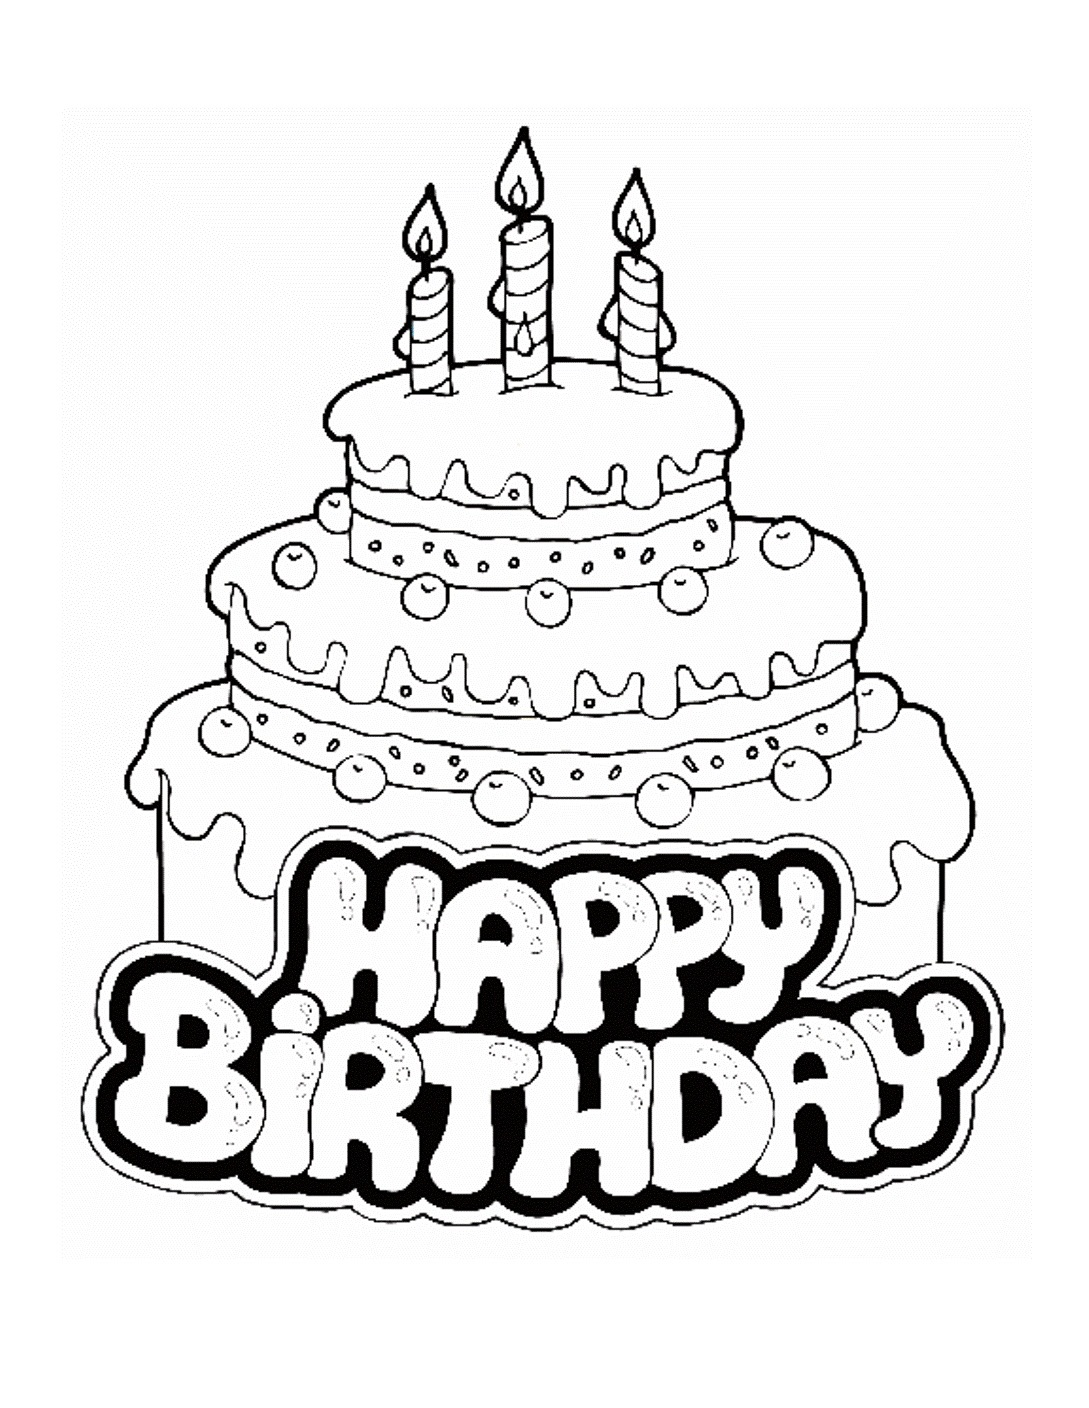 free printable birthday cake coloring pages for kids free printable birthday cake - Coloring Page Printable